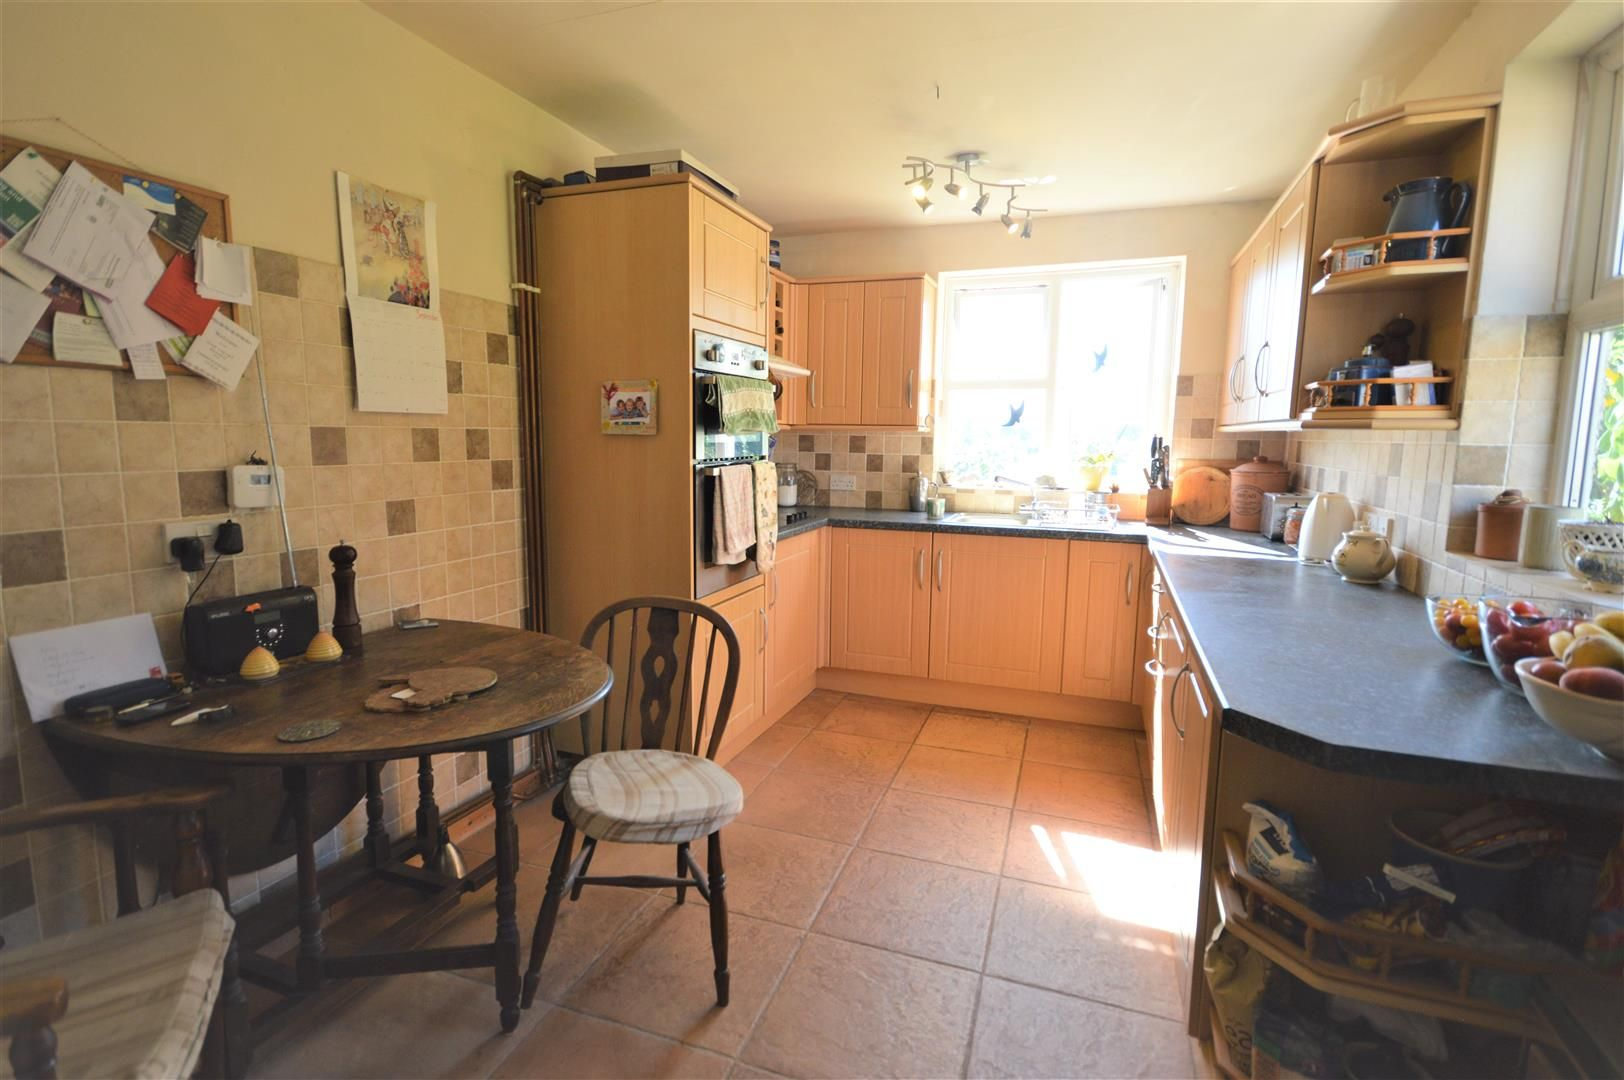 3 bed semi-detached for sale in Hatfield  - Property Image 2